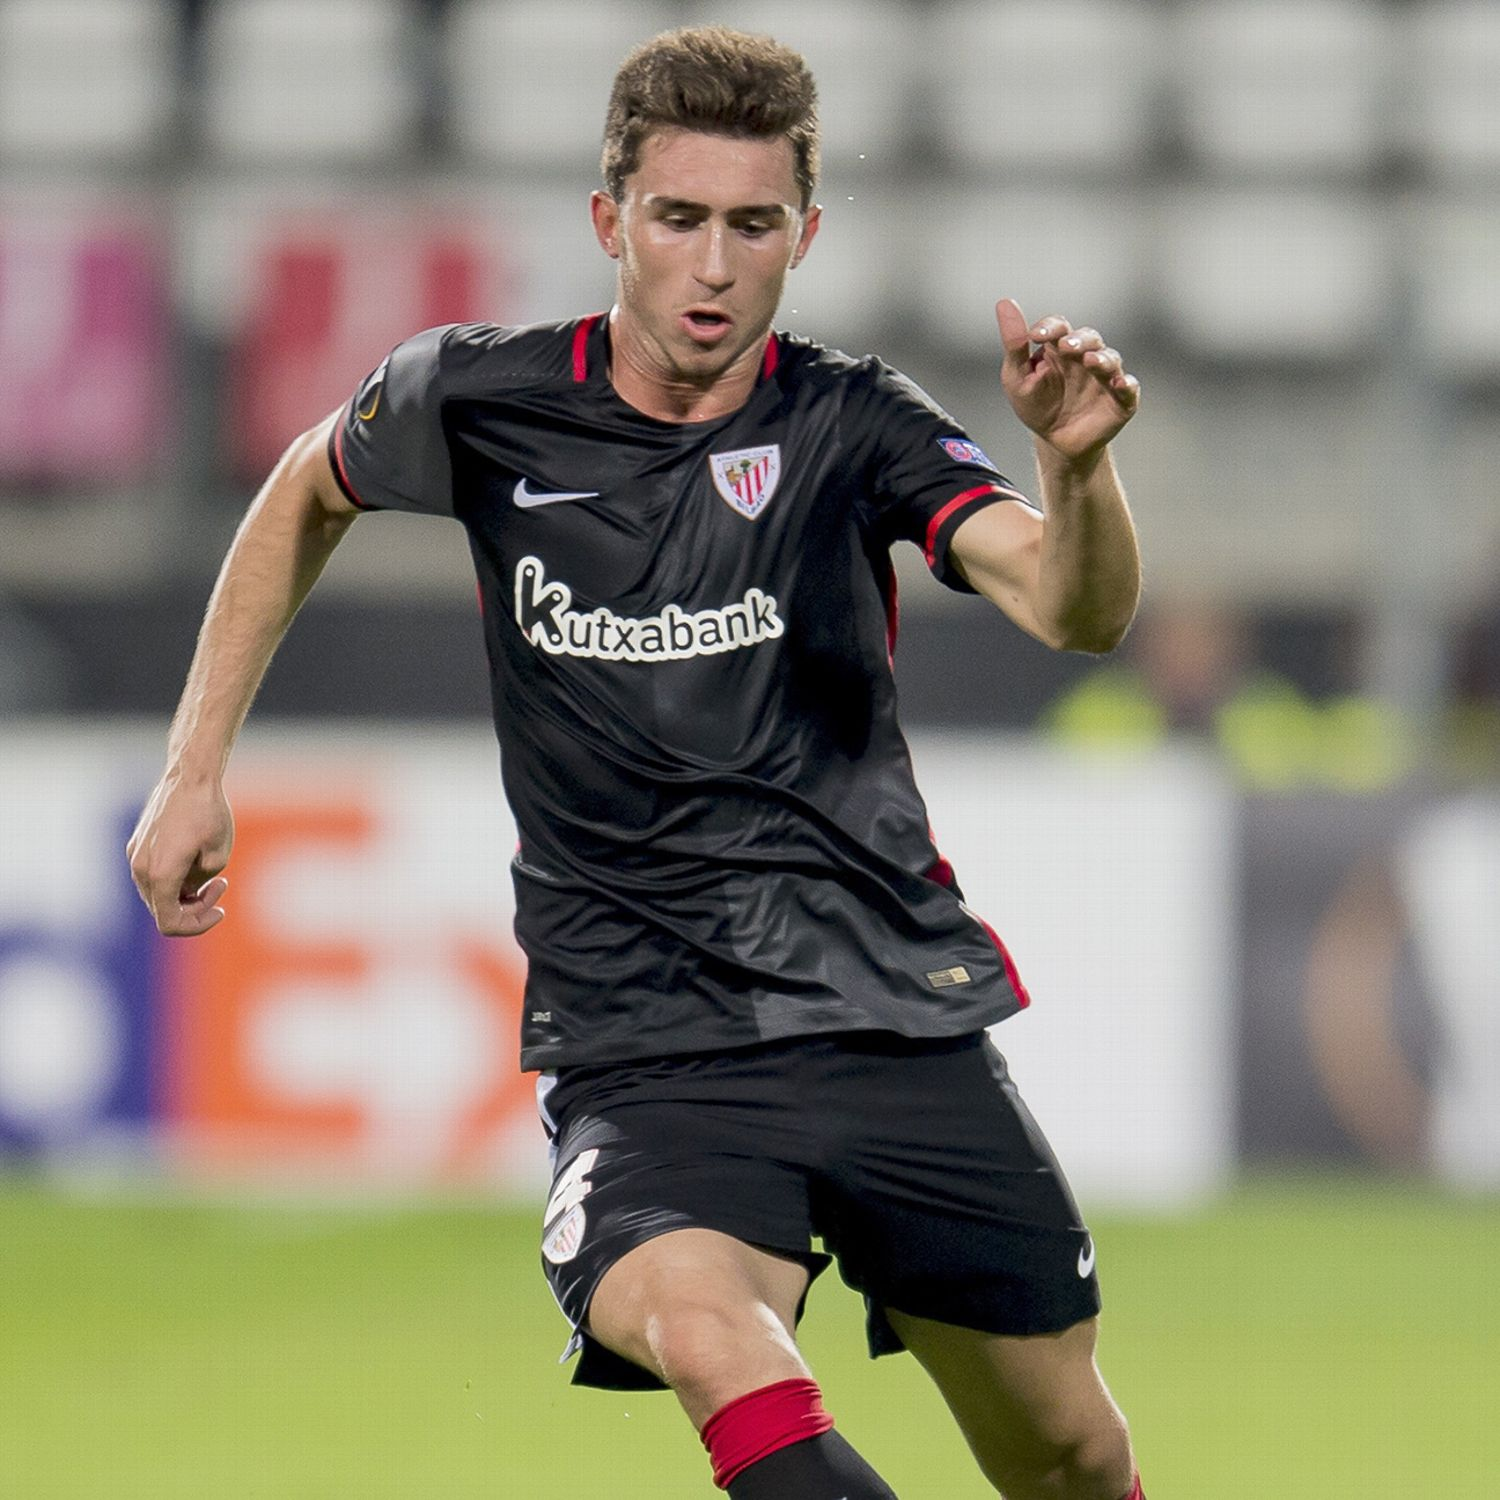 aymeric laporte my aim is to play for france not spain